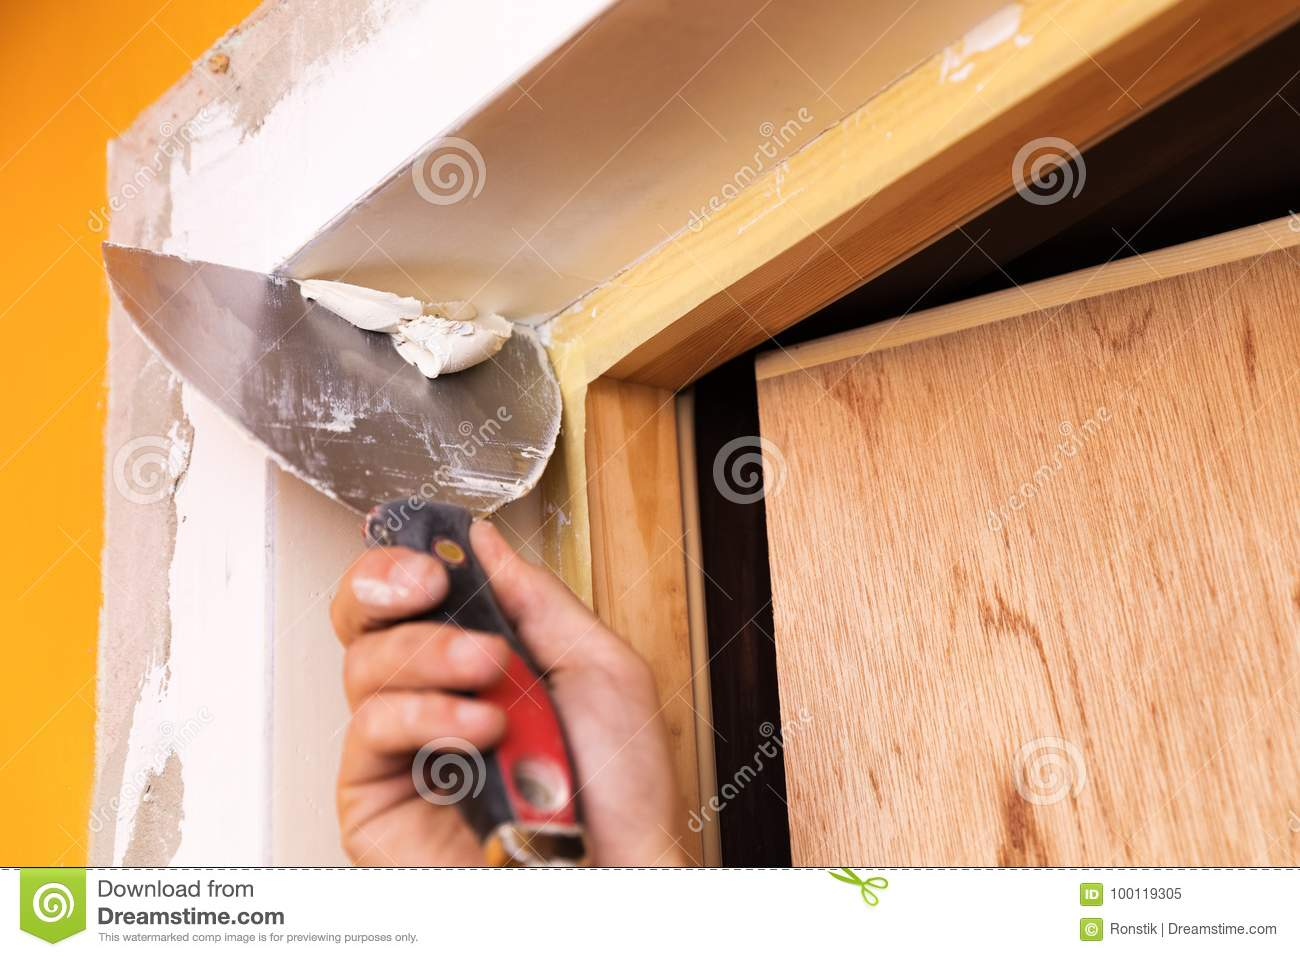 Patching plaster around a new door with spatula